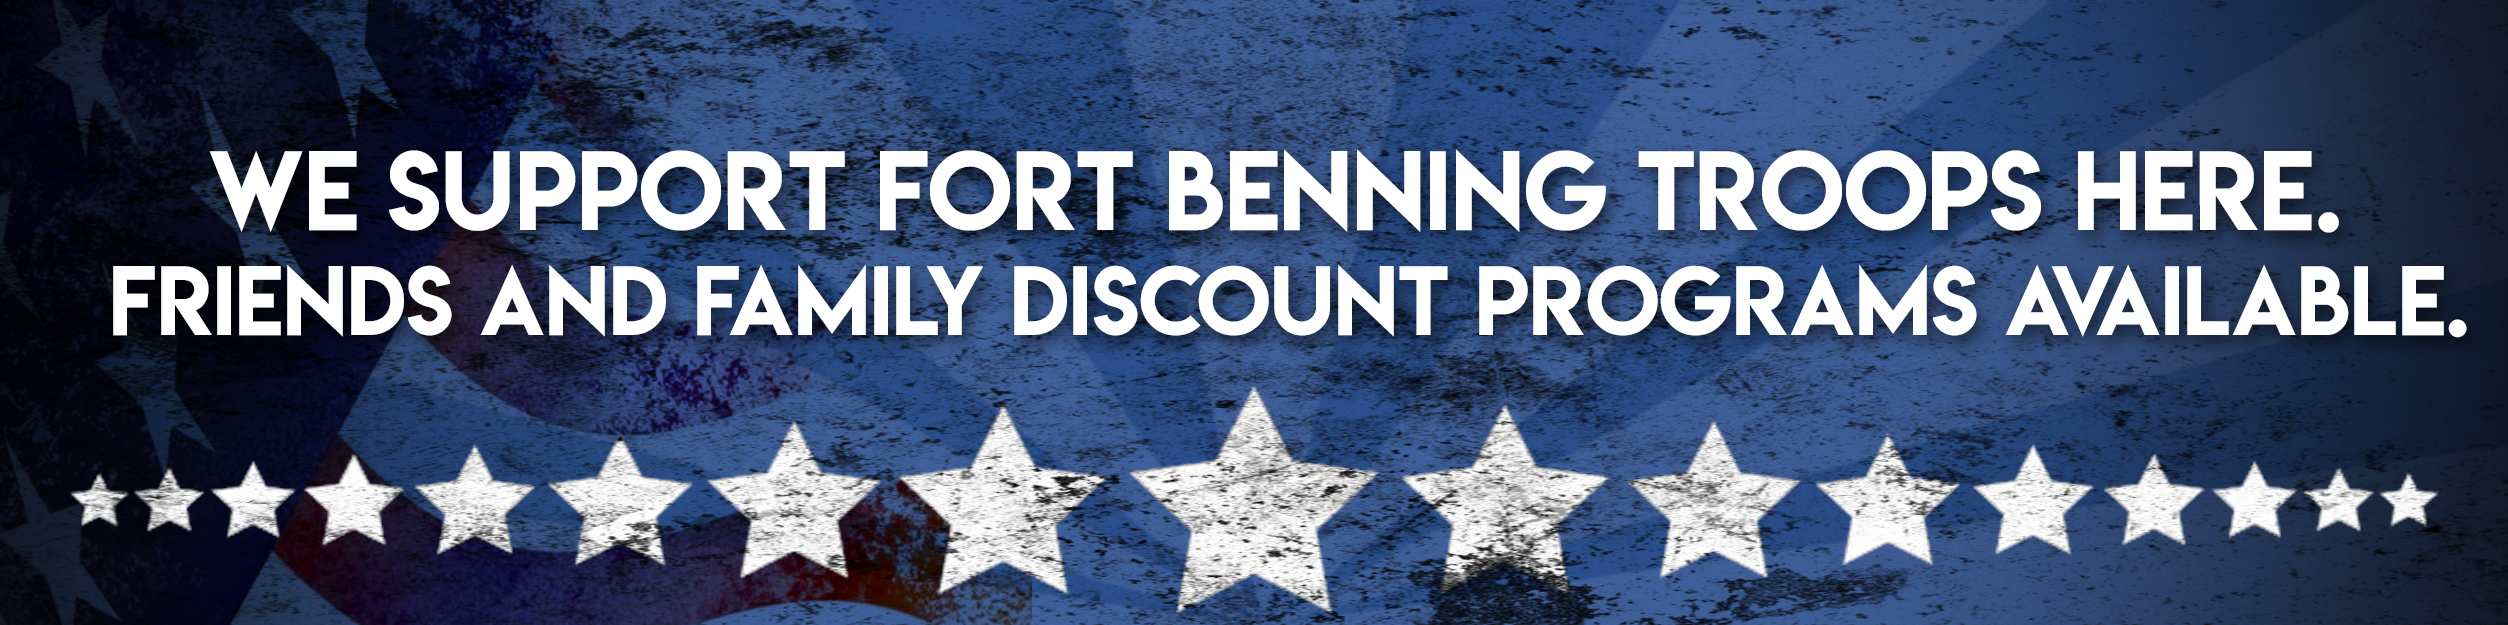 We support Fort Benning Troops. Friends and Family Discounts also Available!